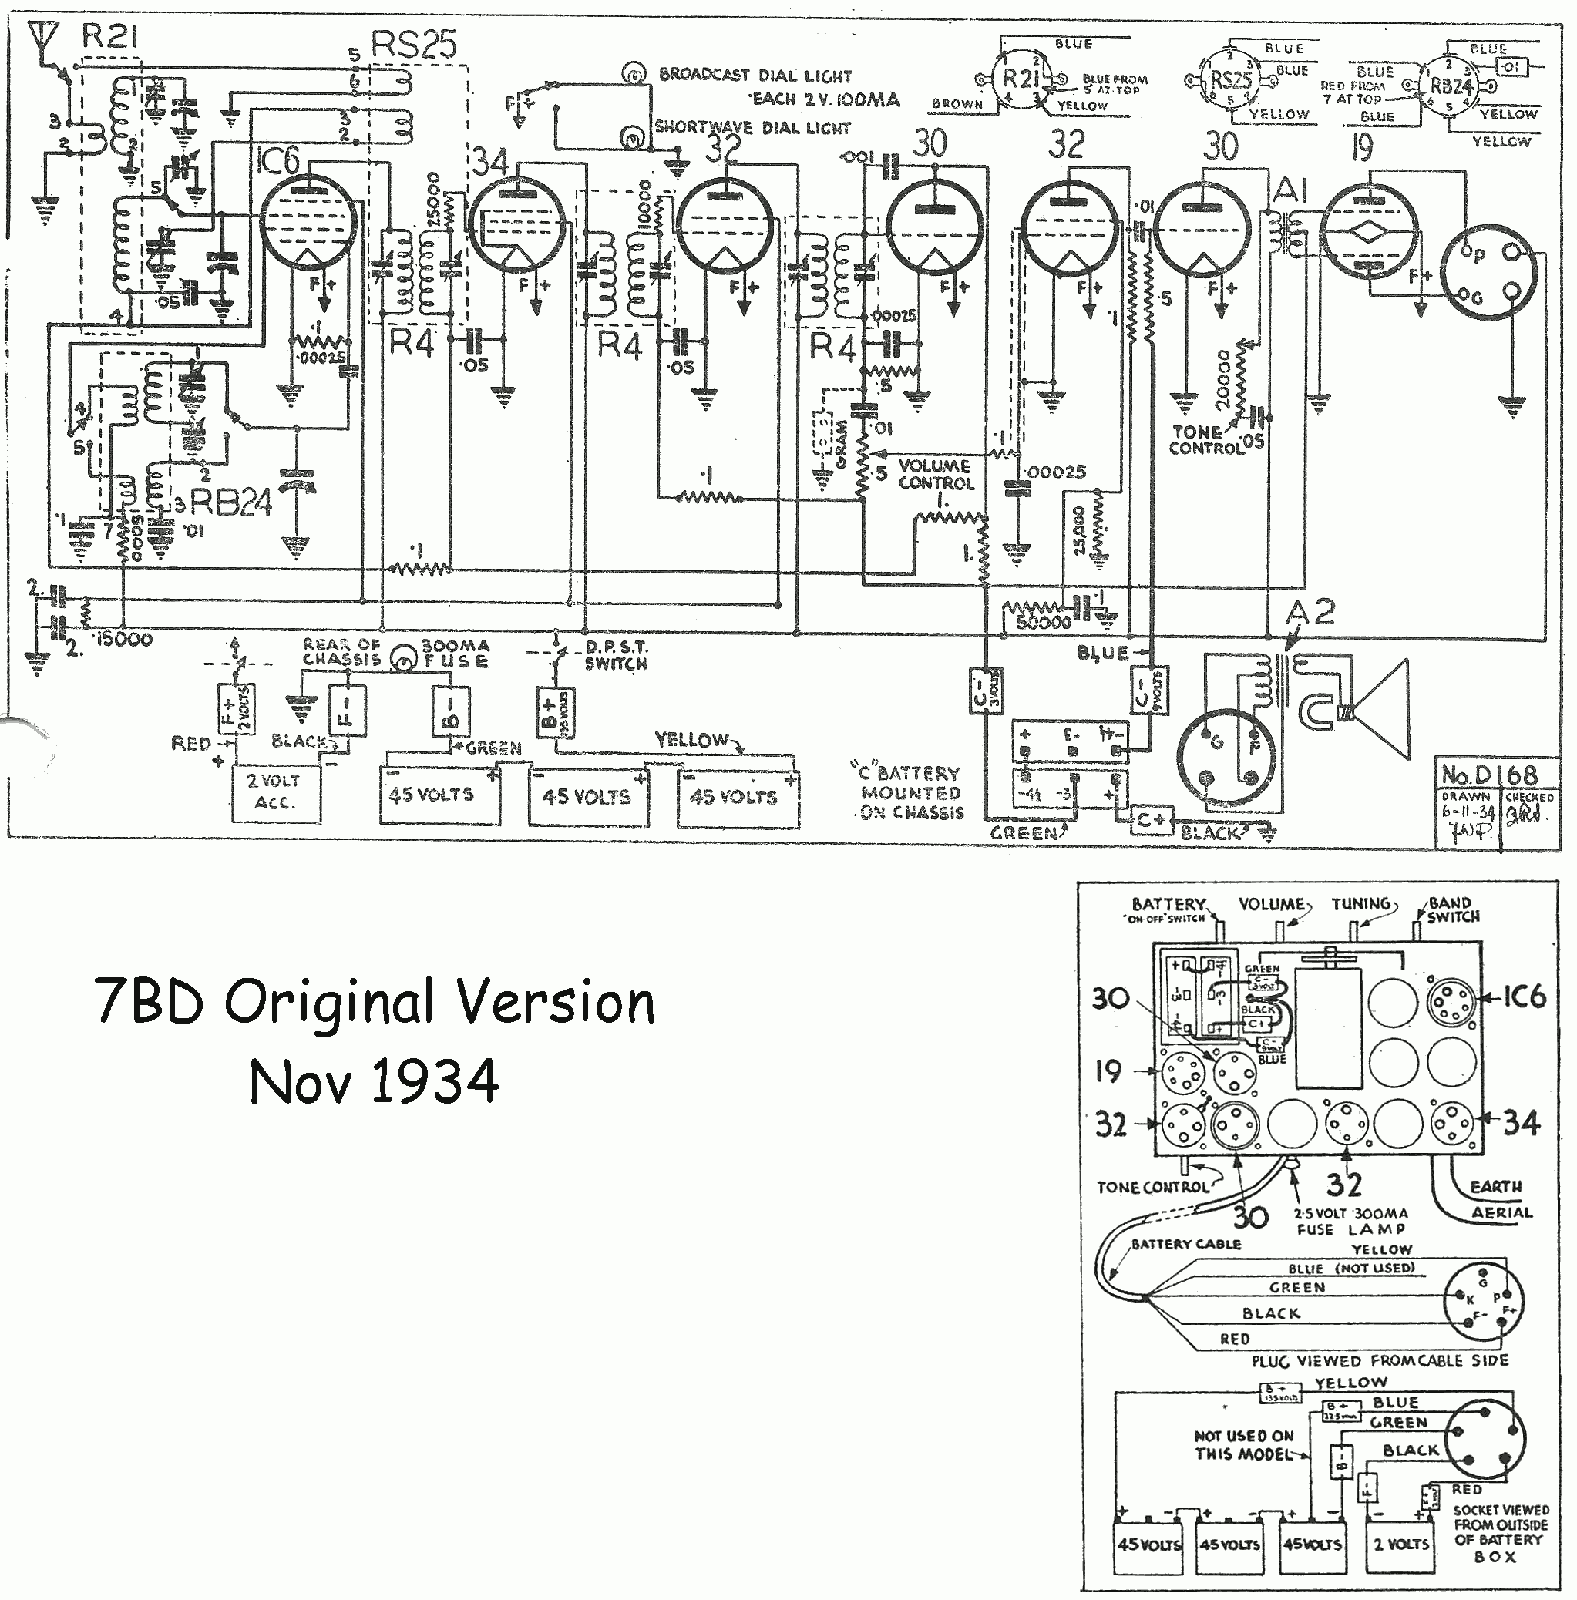 1934 Courtenay v1 7BD Schematic